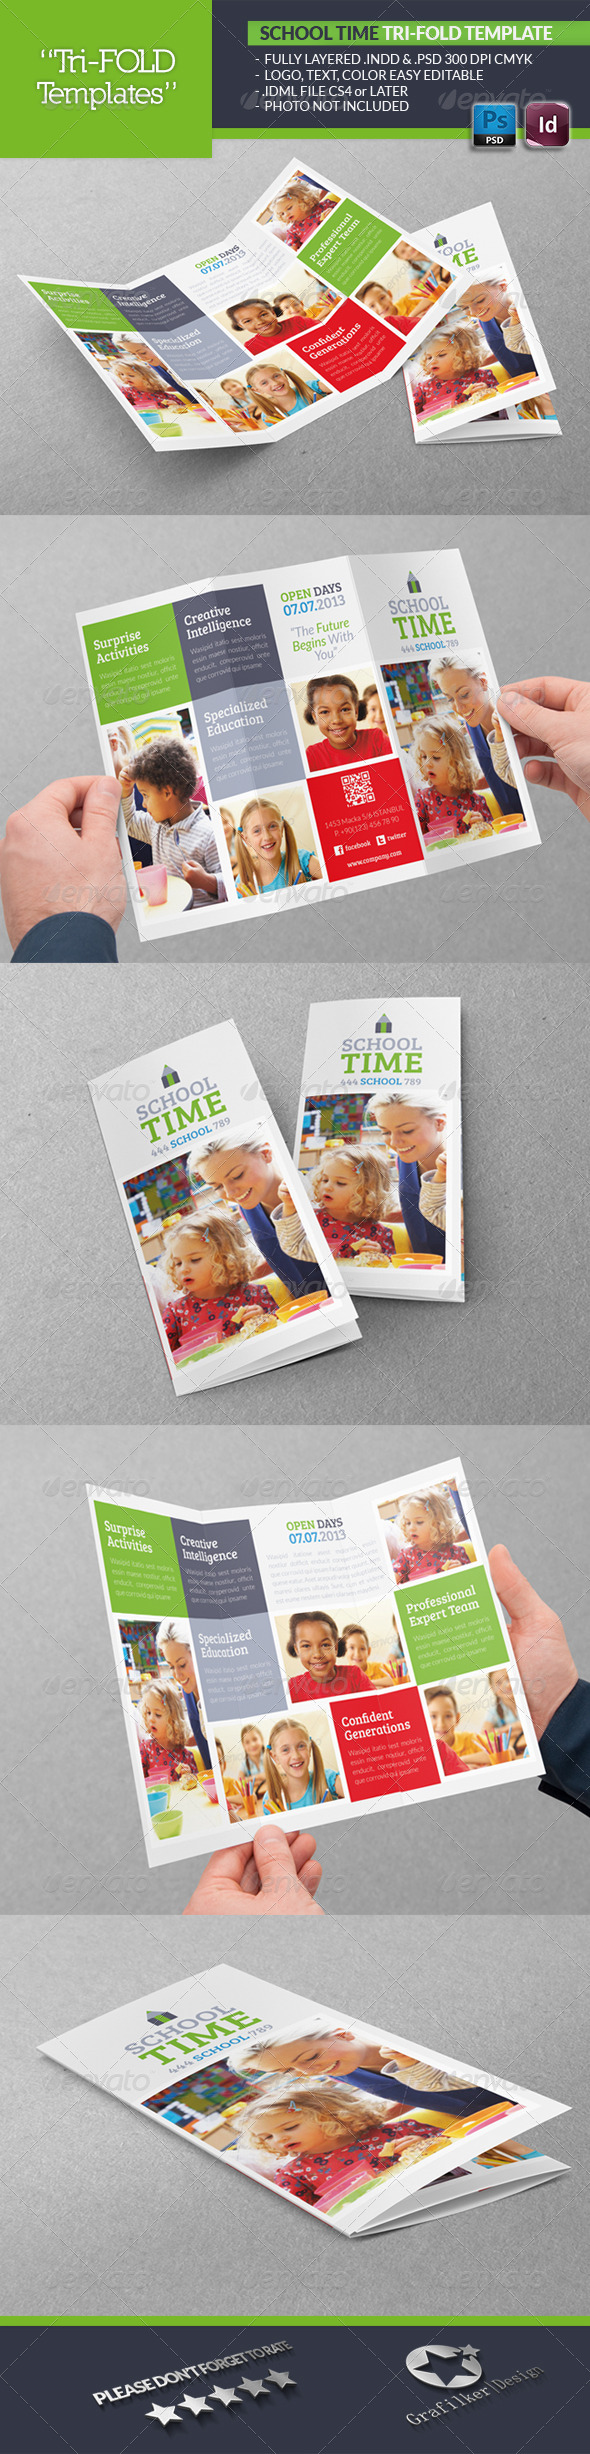 School Time Tri-Fold Template - Brochures Print Templates